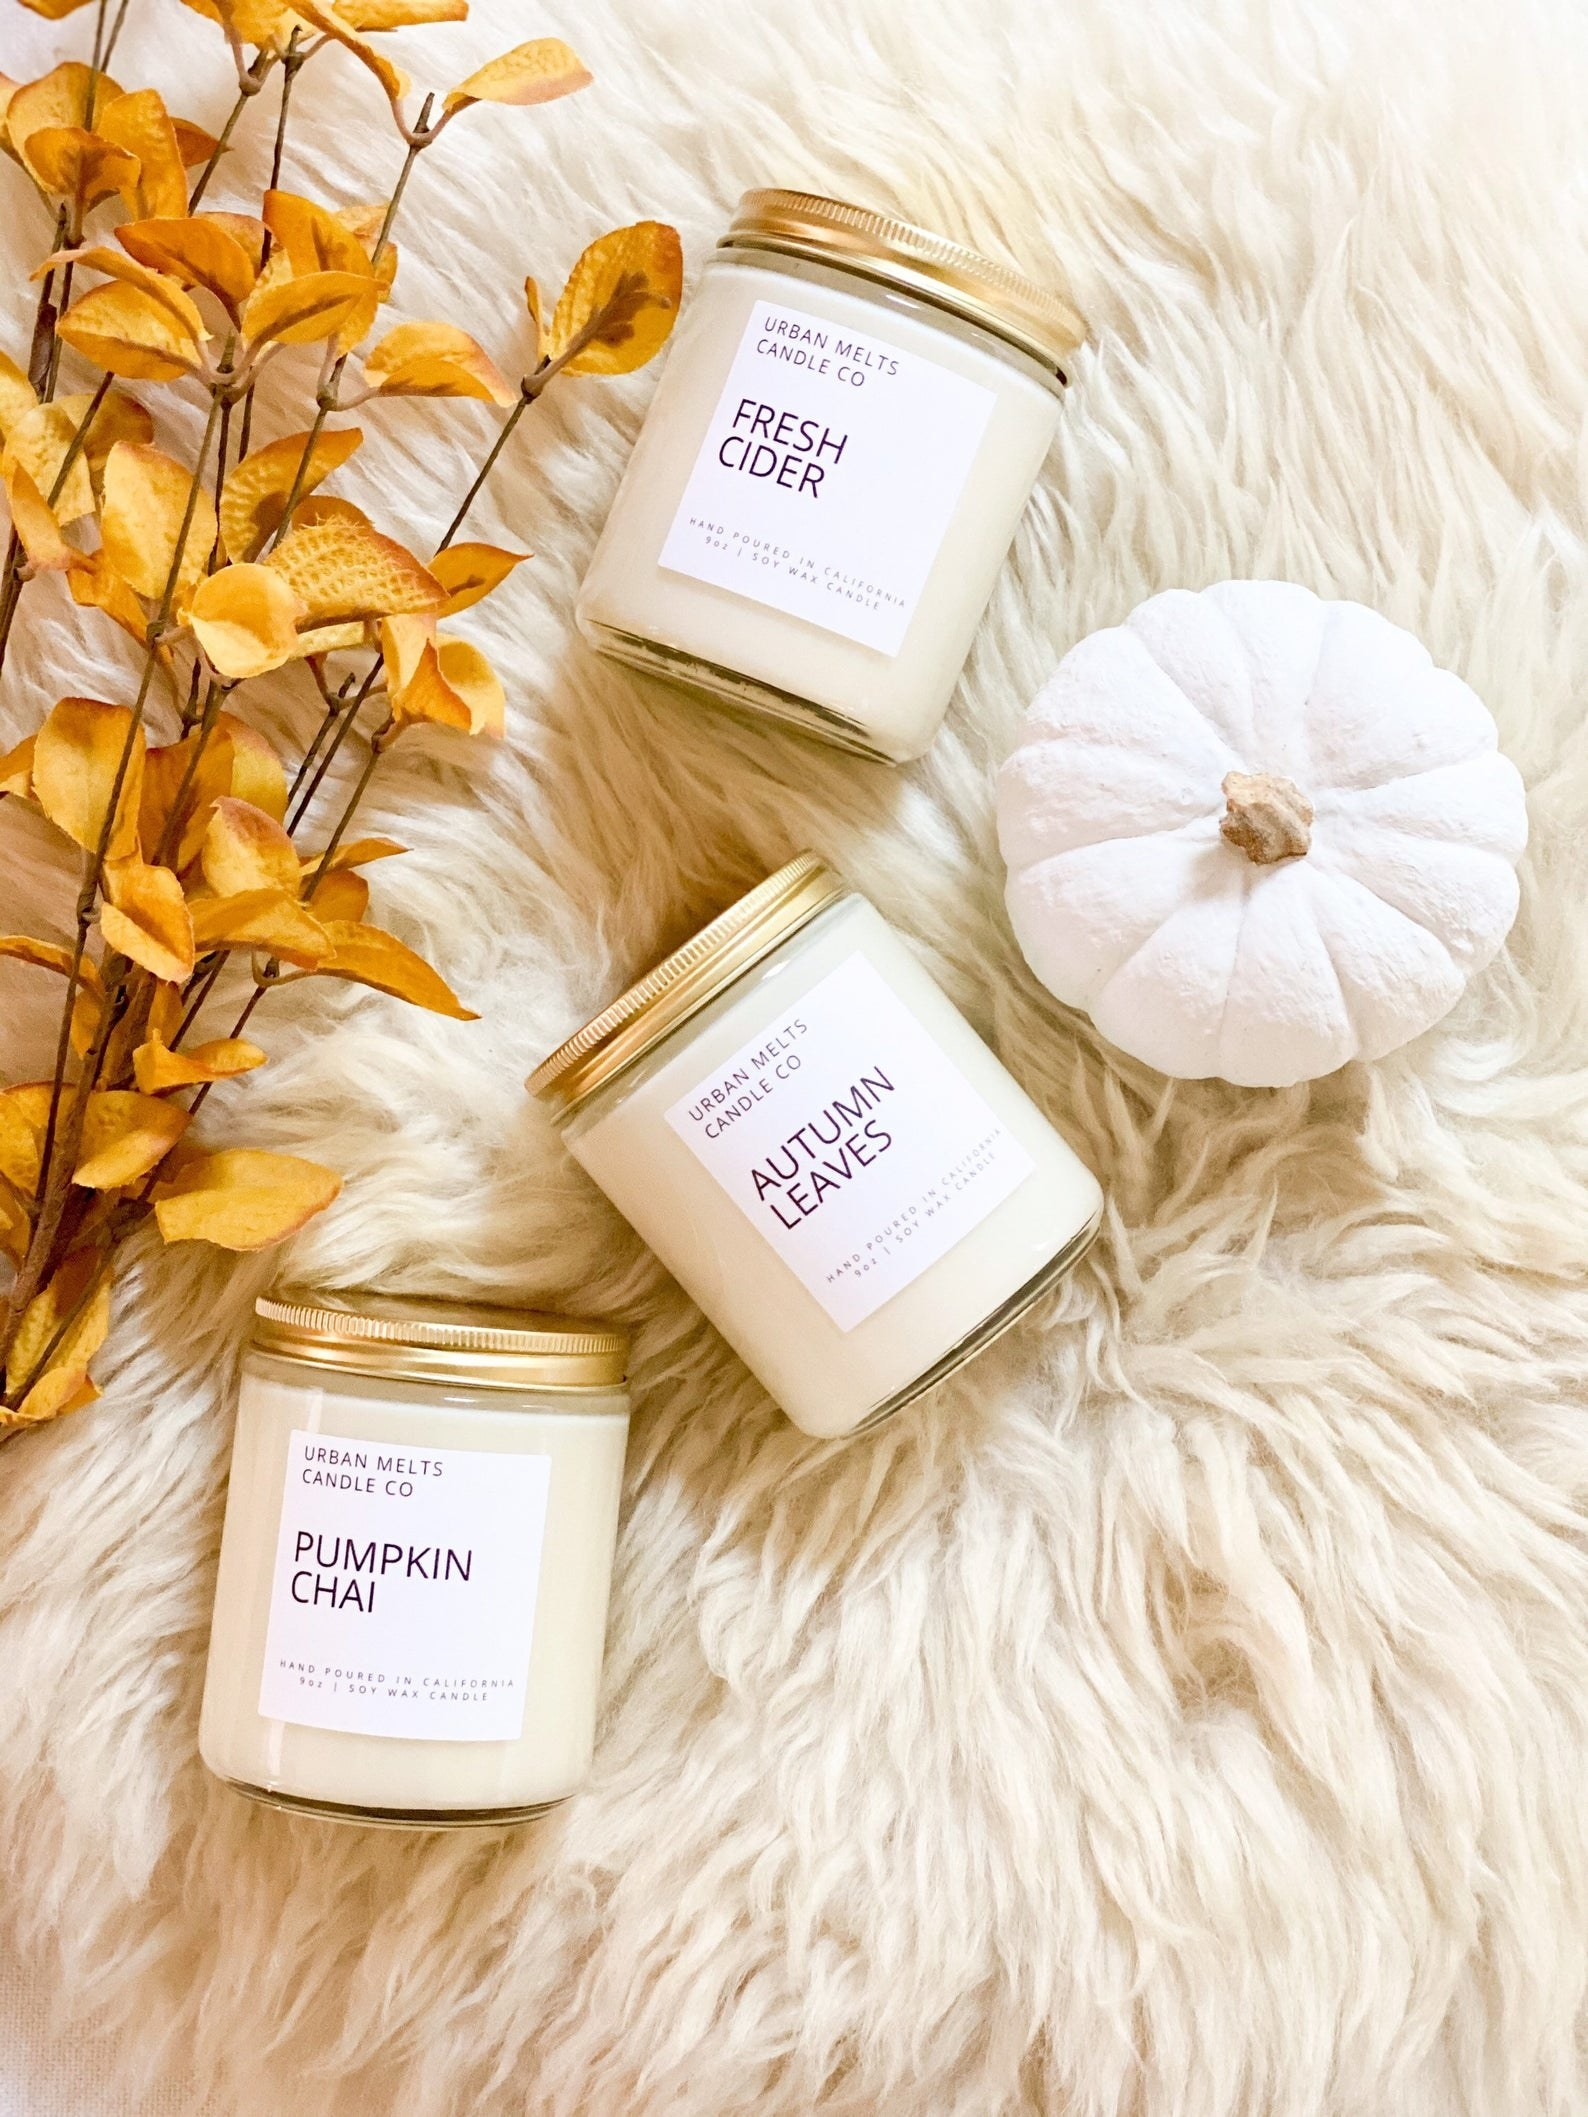 Candles in Fresh Cider, Pumpkin Chai, and Autumn Leaves